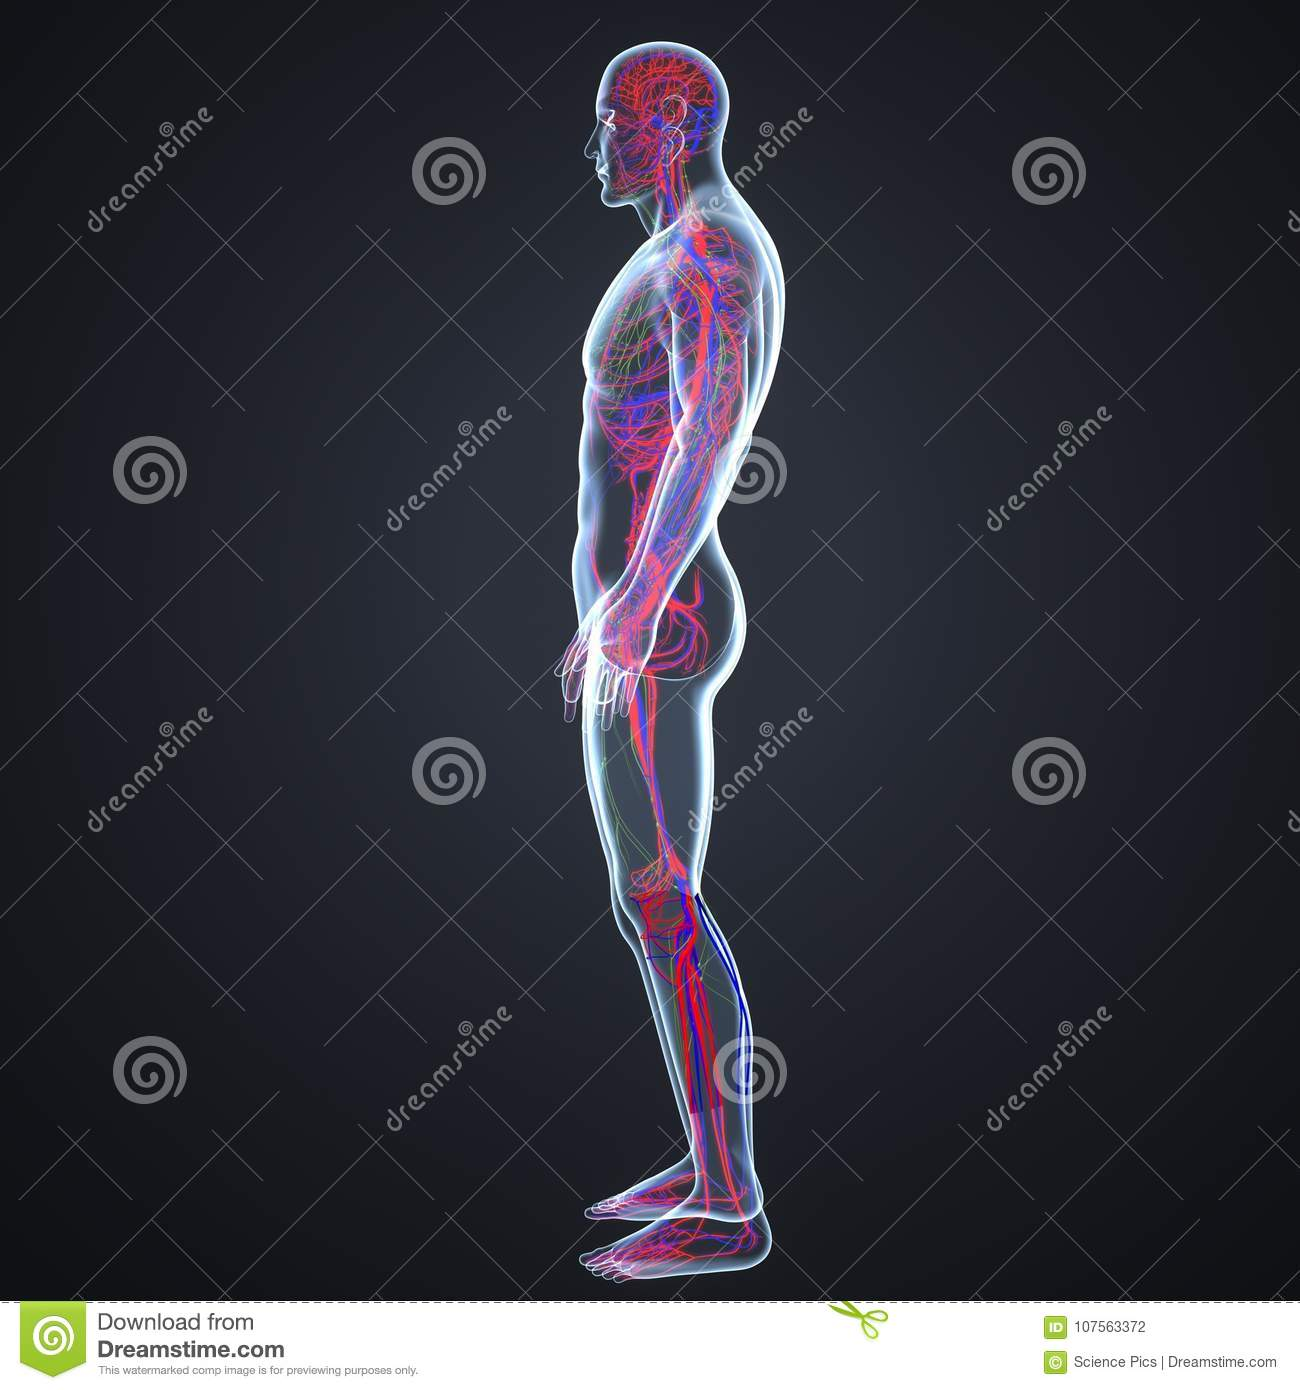 Arteries, Veins And Lymph Nodes In Human Body Lateral View